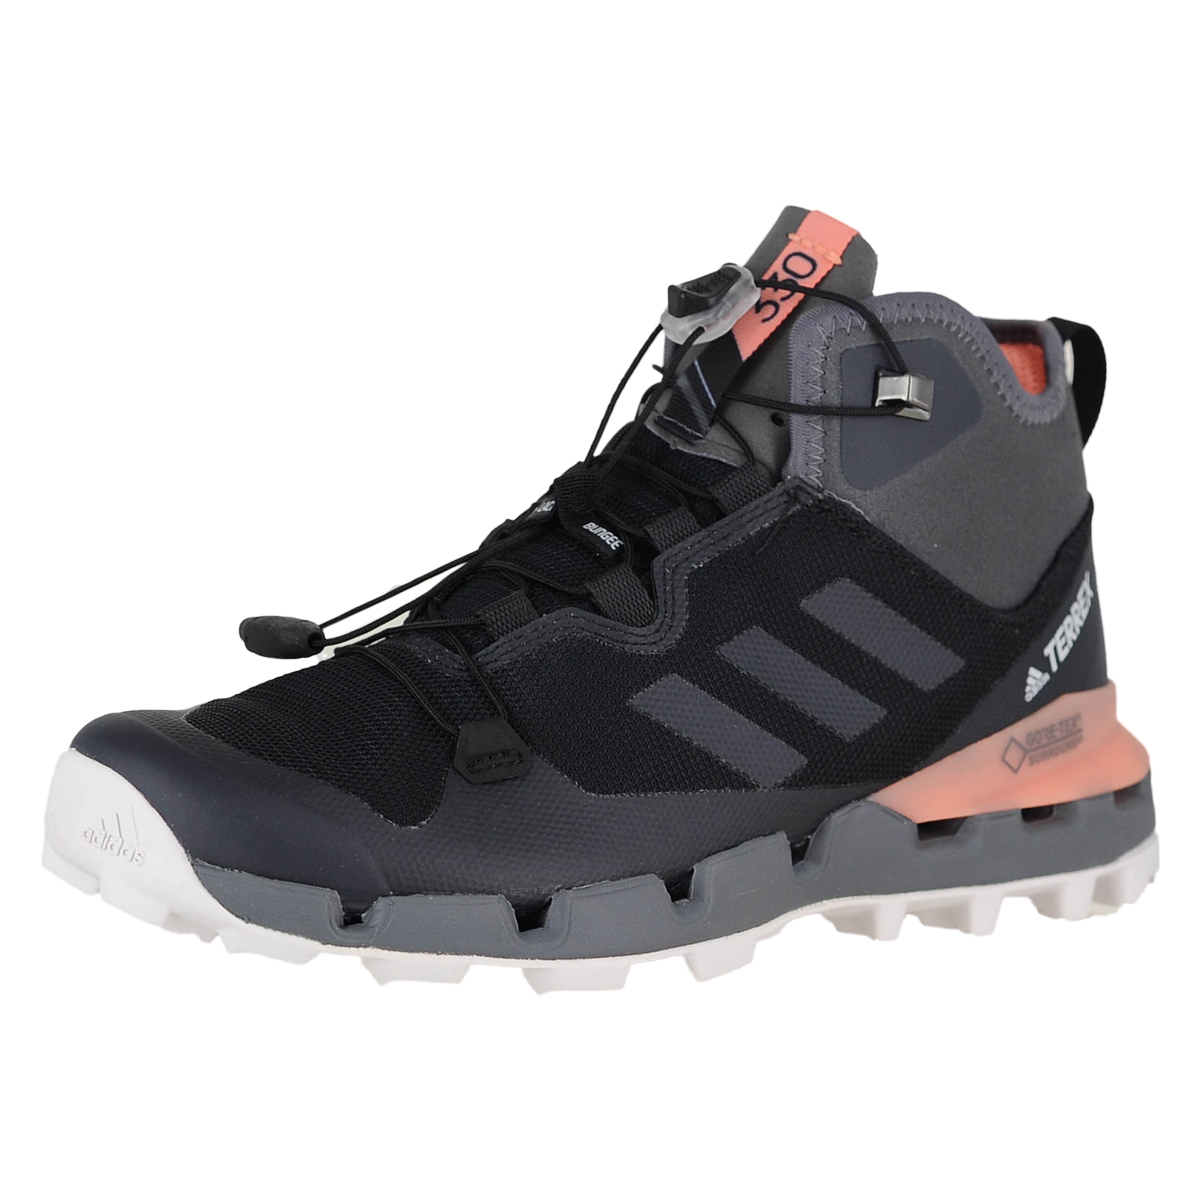 87244e71f6530 Details about Adidas Terrex Fast Mid Gtx-Surround W Blk Grey Five Chalk  Coral Womens Boots 11M